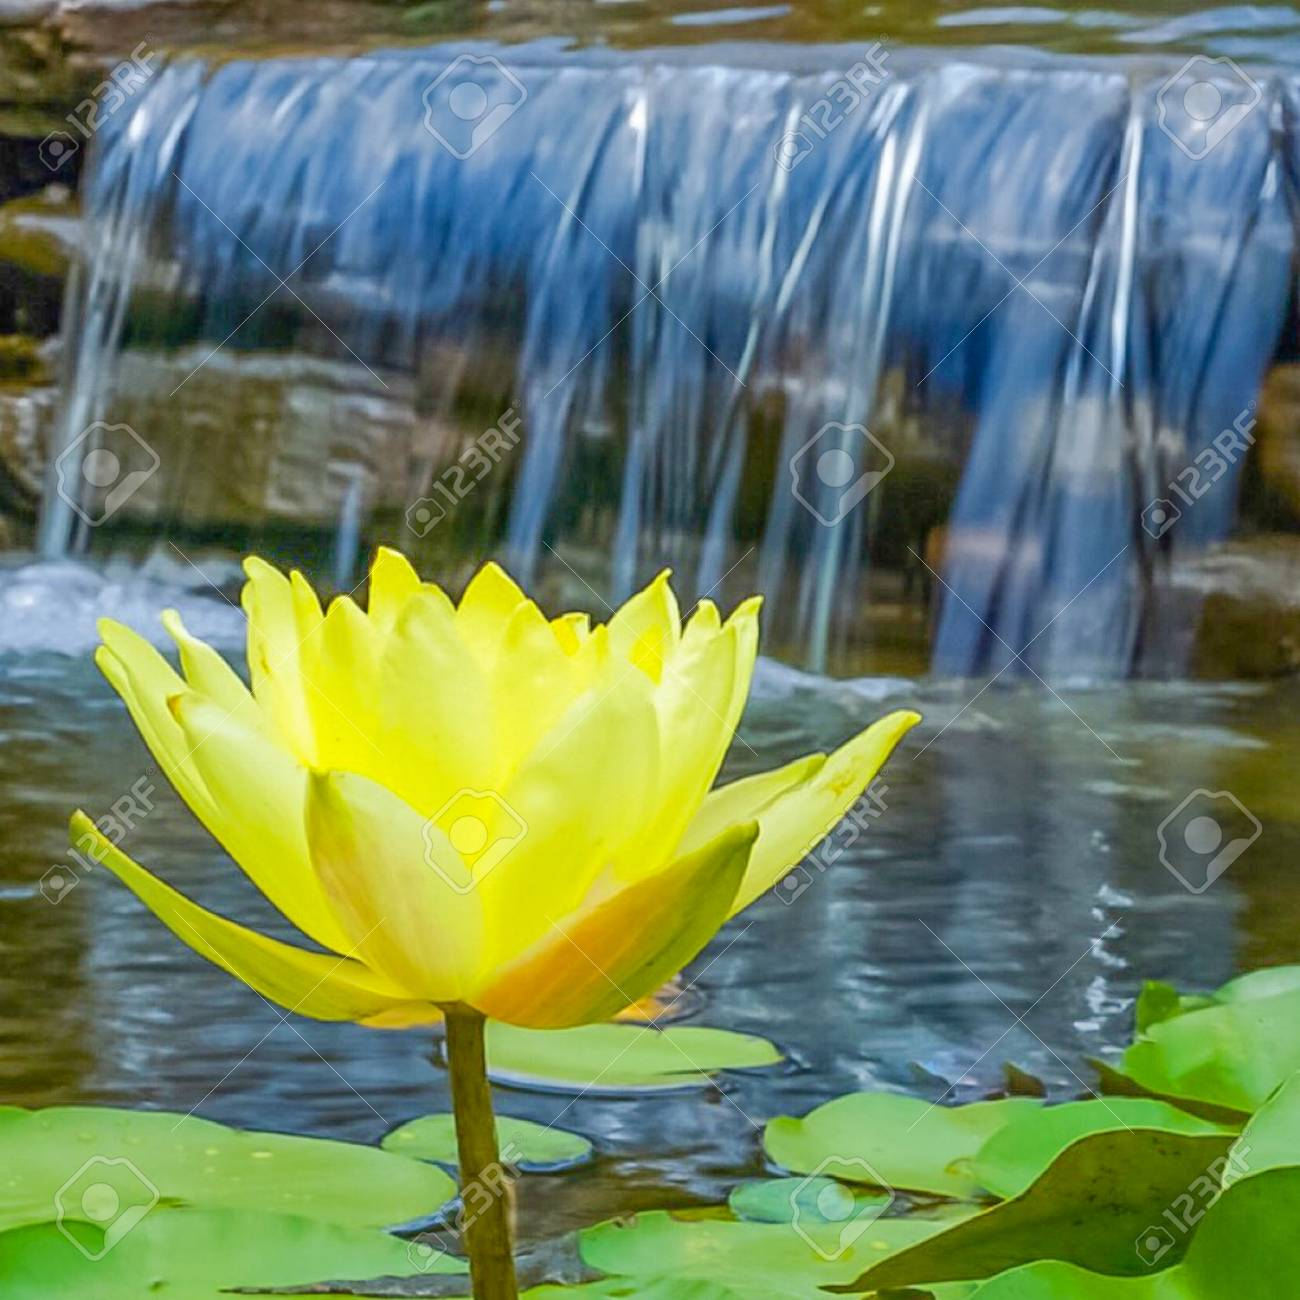 A Yellow Lotus Flower And Lily Pads In A Pond With A Waterfall